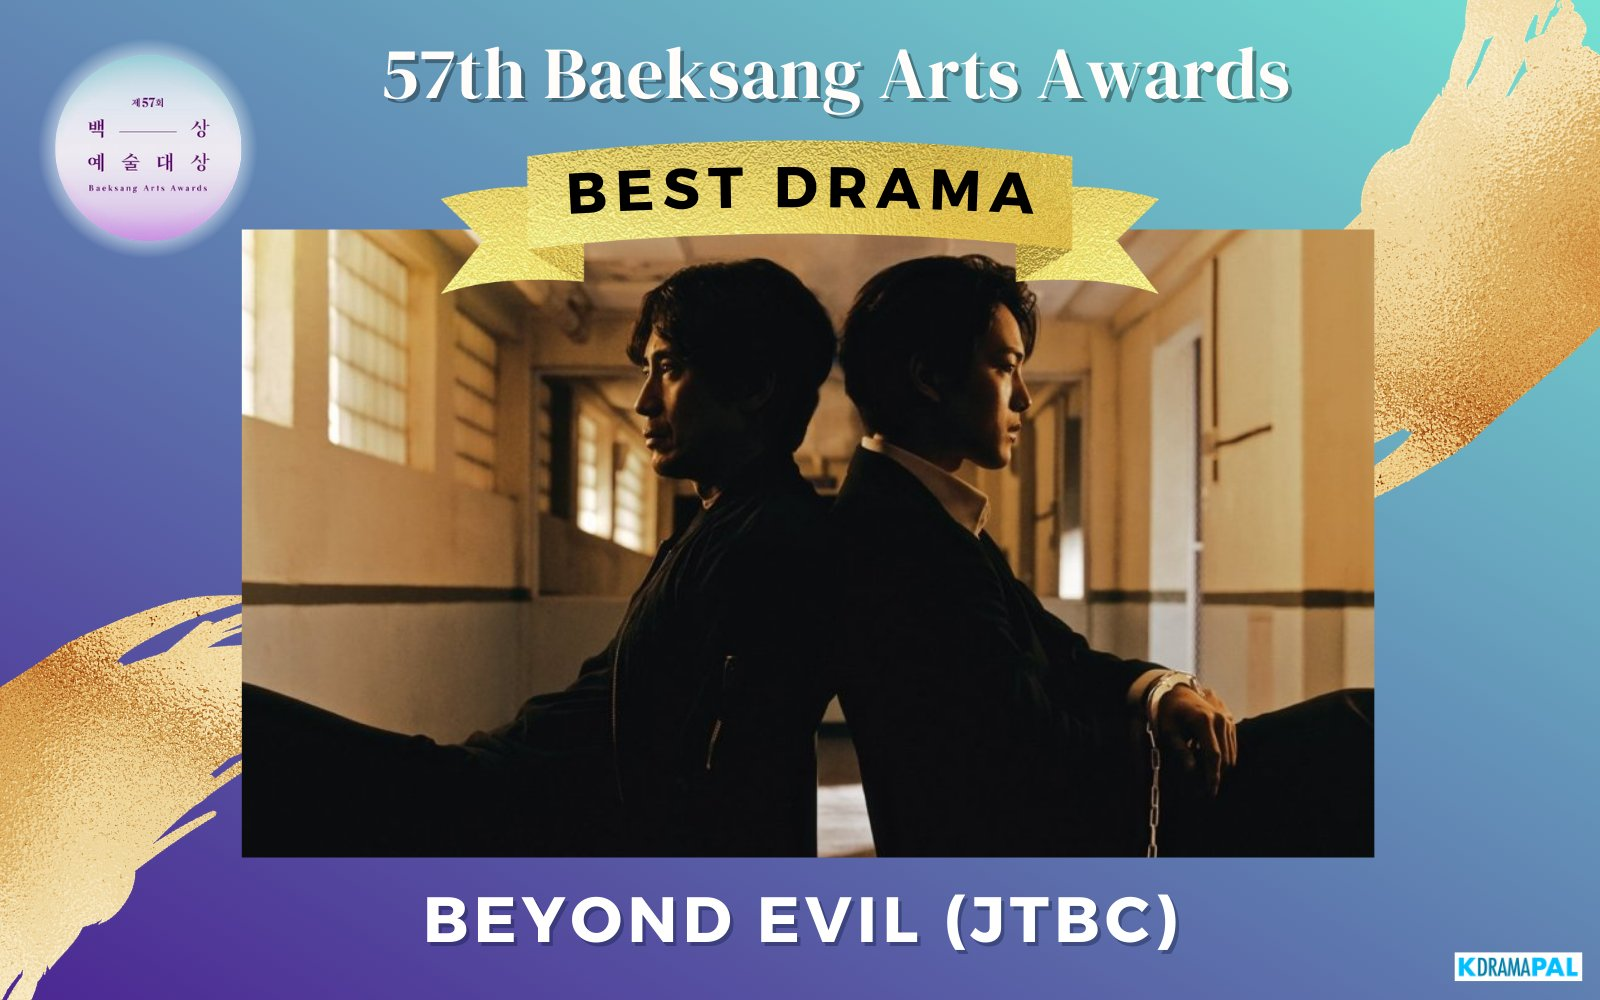 'Beyond Evil' de JTBC gana a lo grande en los 57th Baeksang Arts Awards